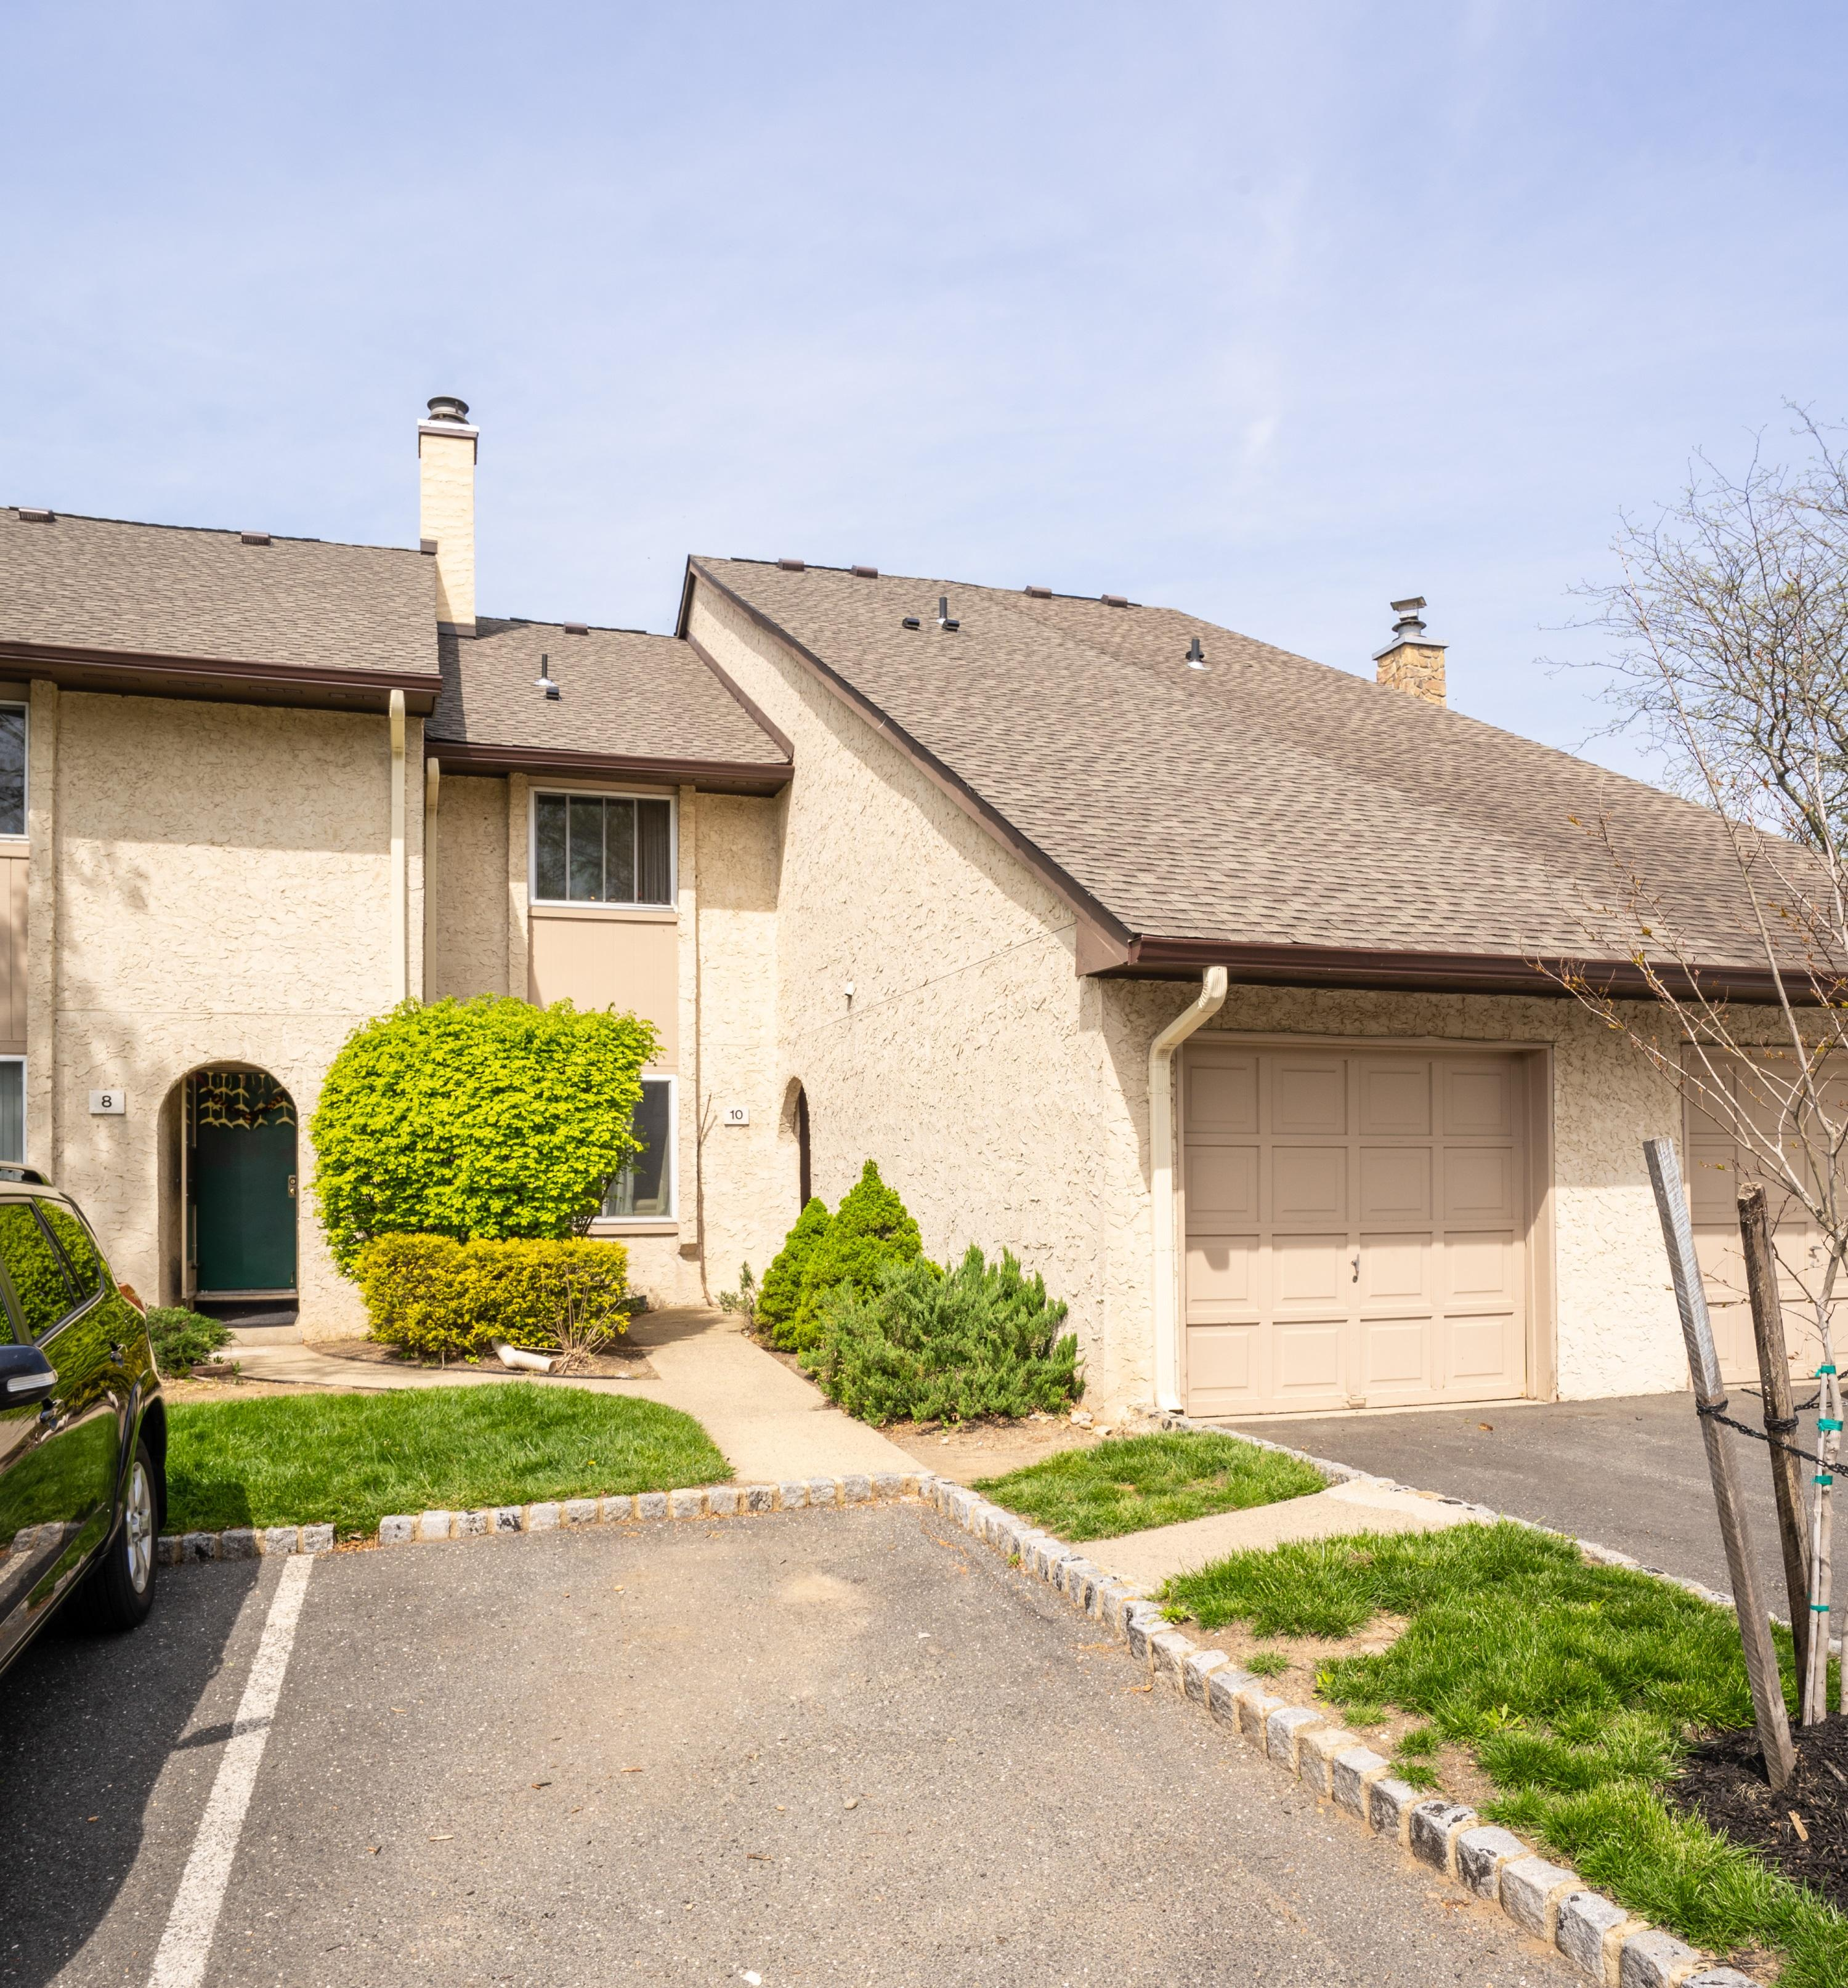 Property Image for 10 Tennyson Drive